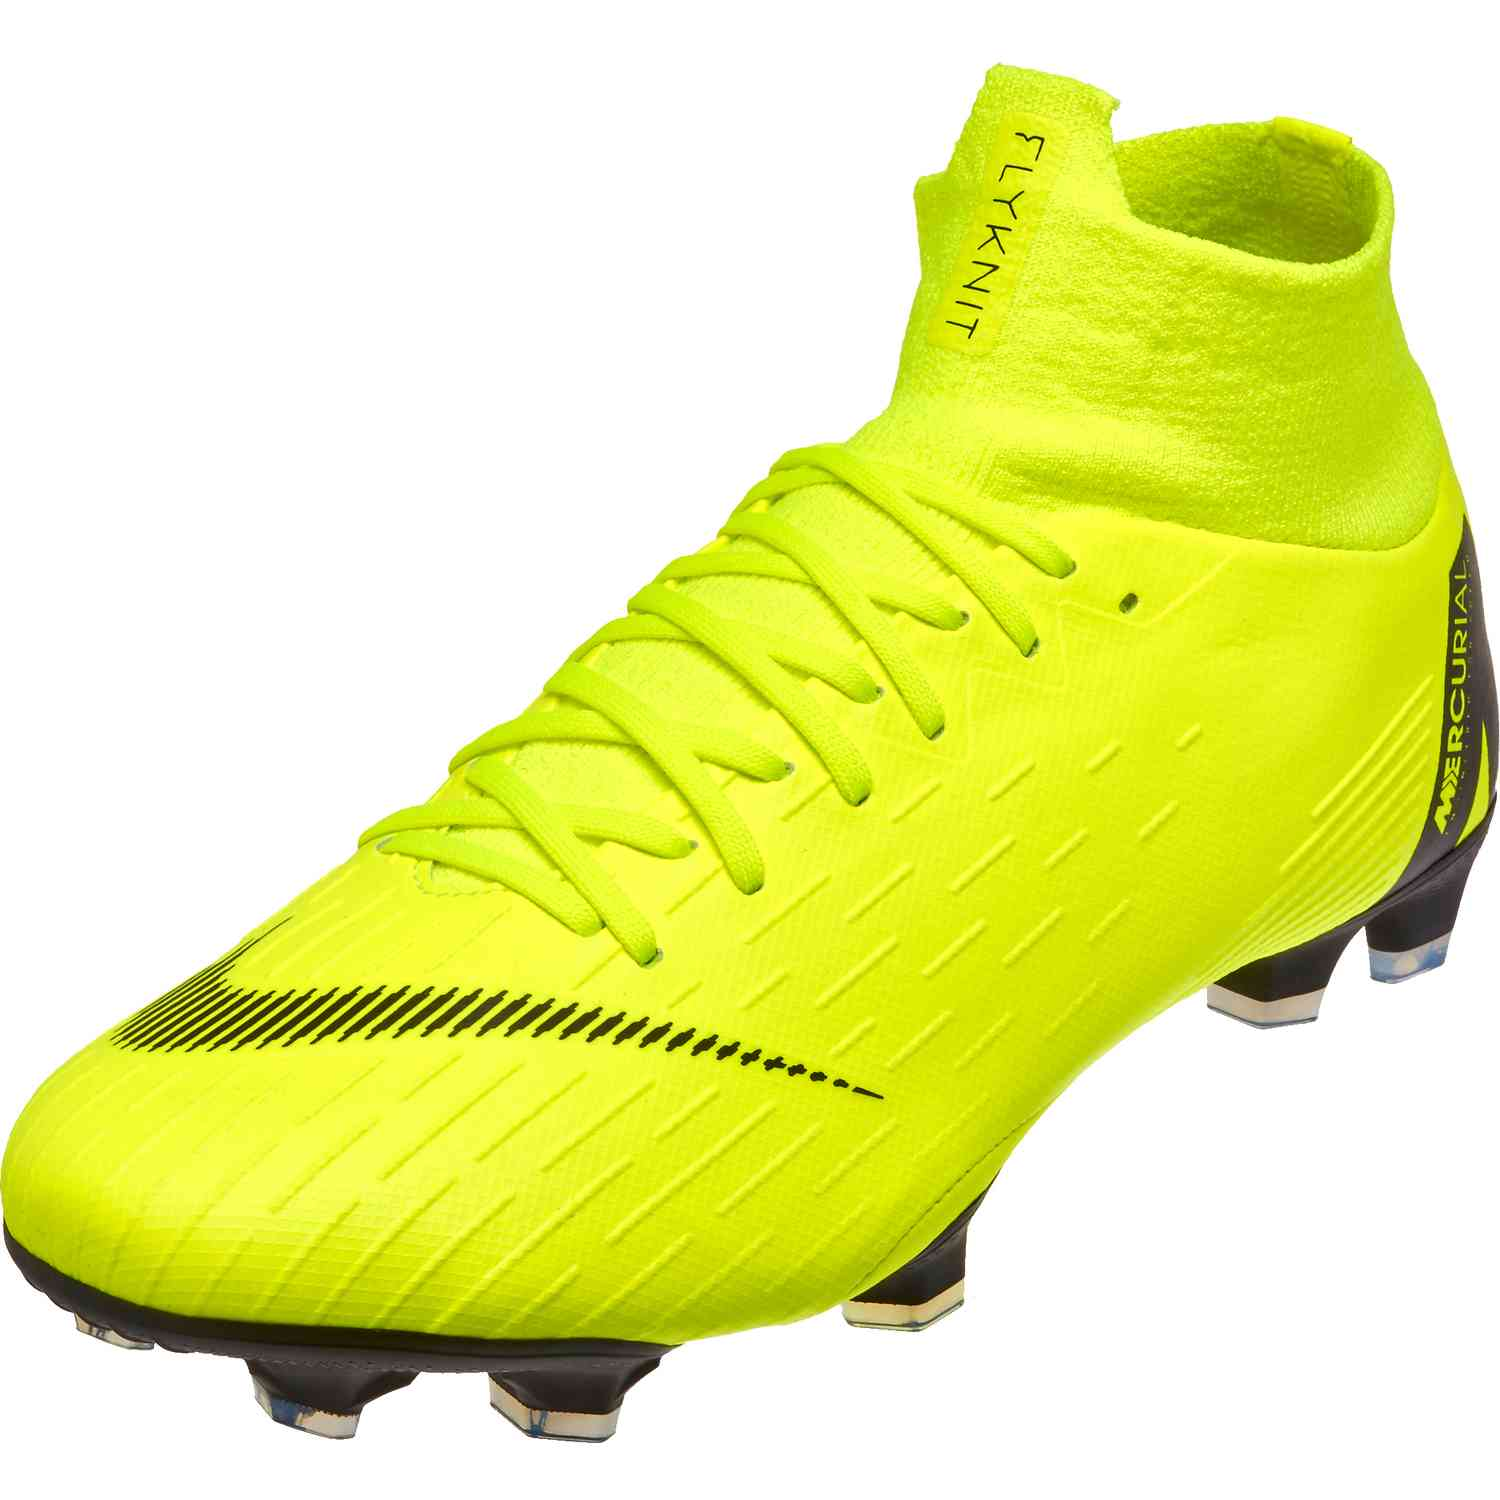 new york f2bdb 8bc42 Nike Mercurial Superfly 6 Pro FG - Volt/Black - SoccerPro